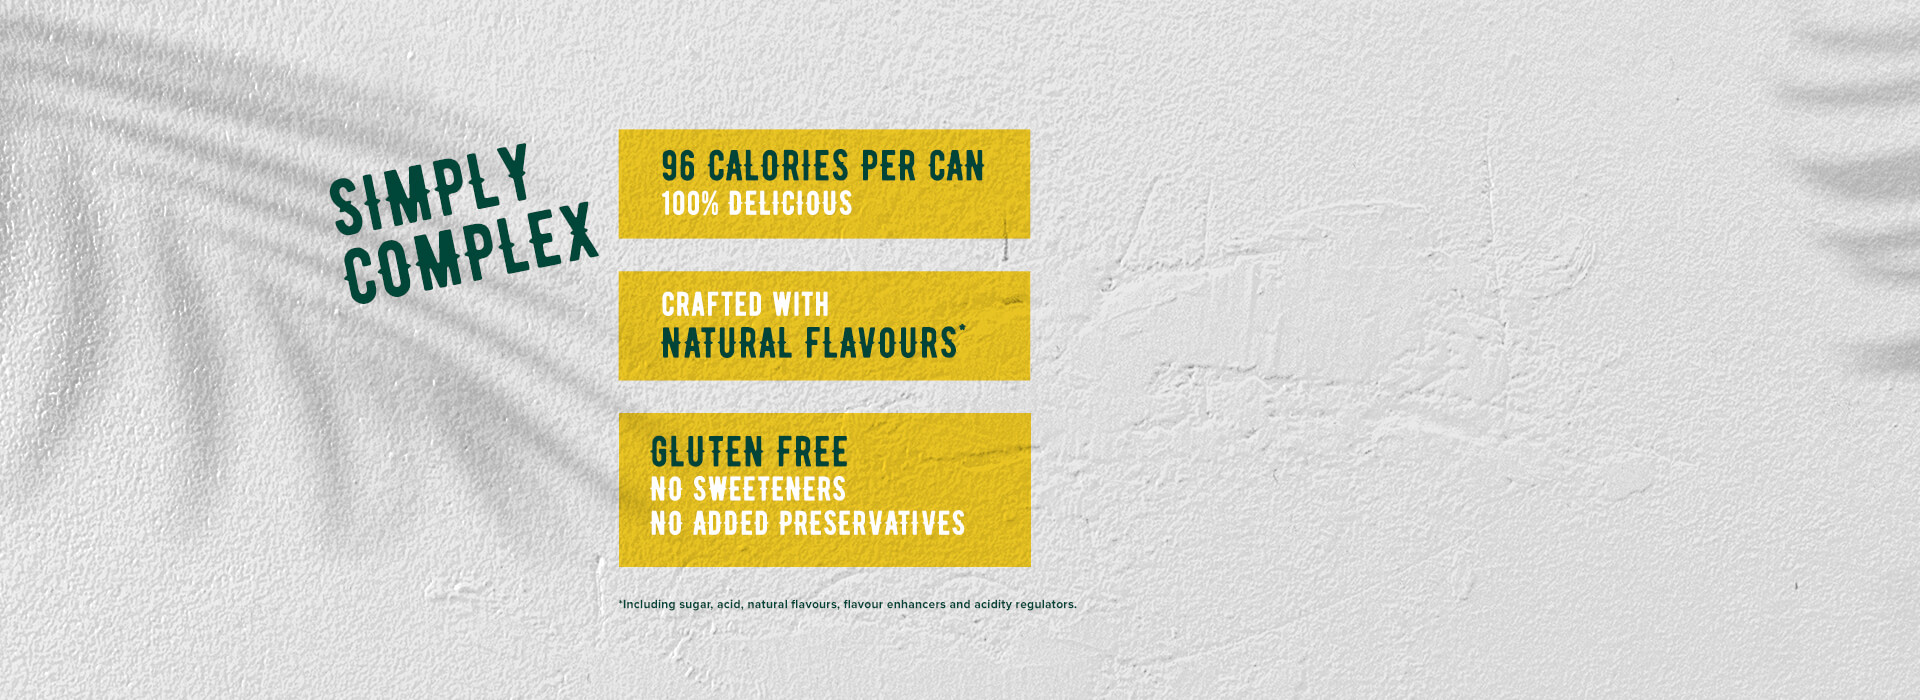 Topo Chico Hard Seltzer drinks are crafted with natural flavours, gluten free and only contain 96 calories per can